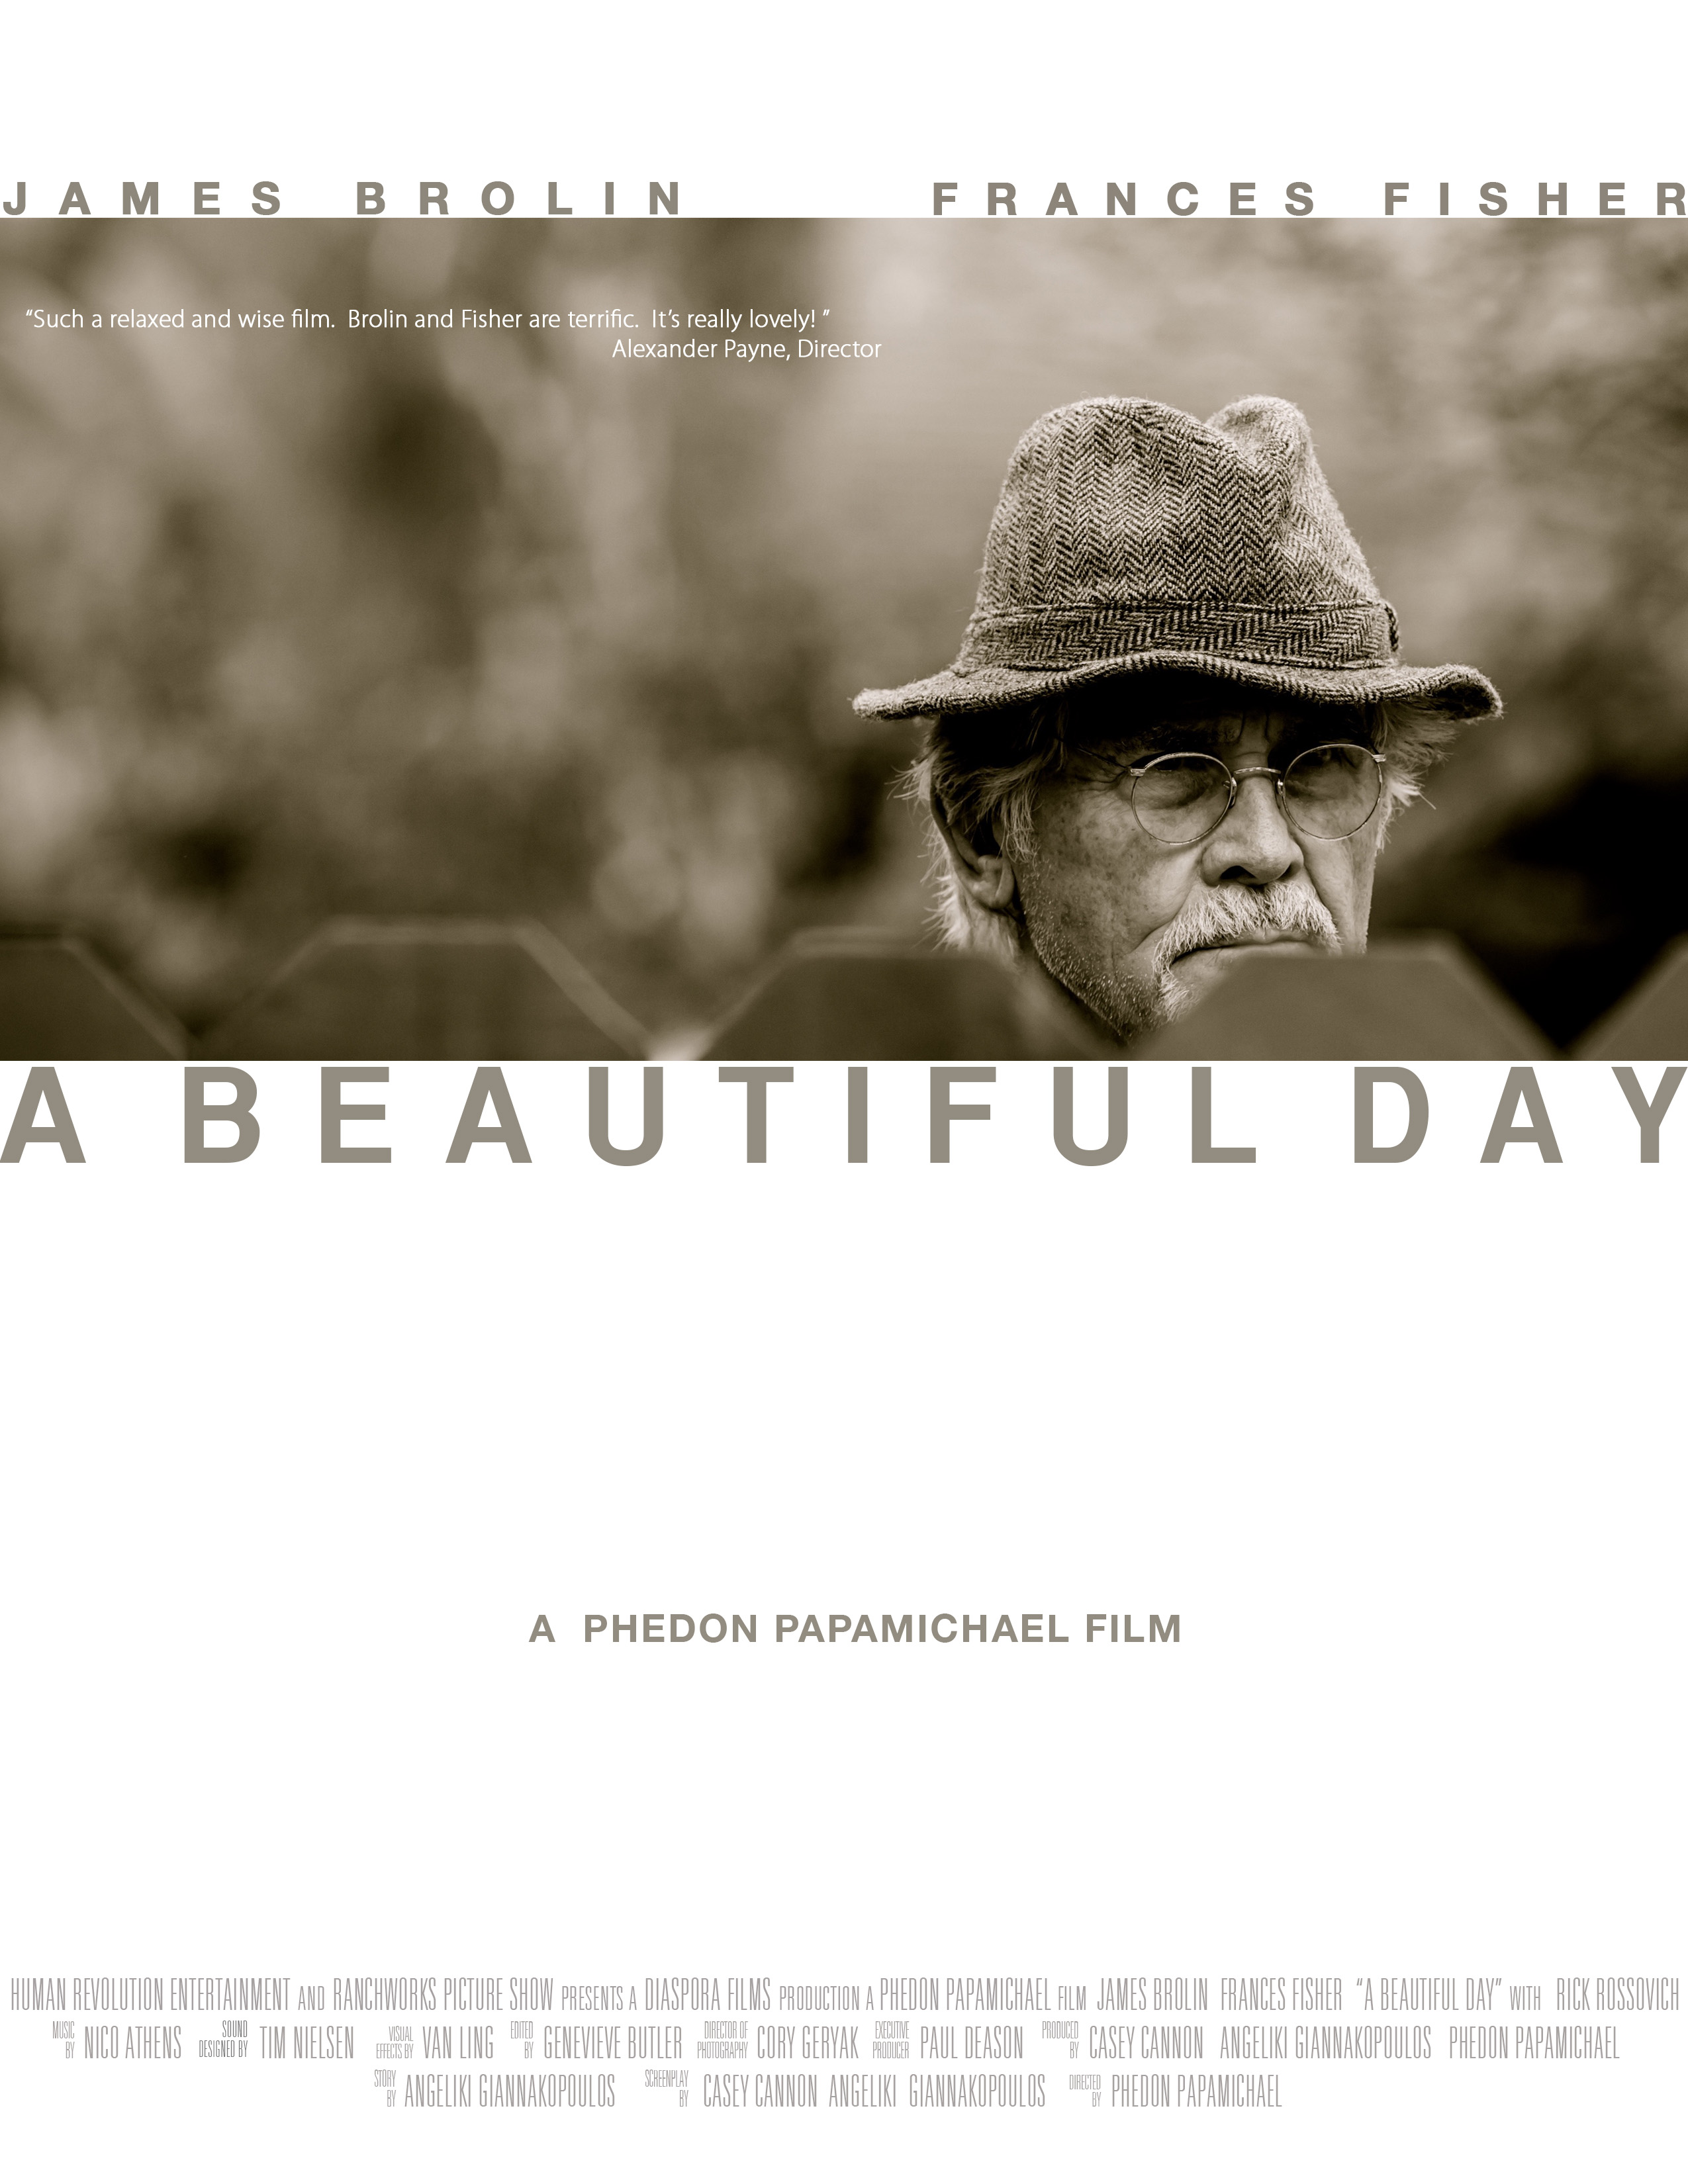 Poster for A Beautiful Day, directed by Phedon Papamichael, ASC